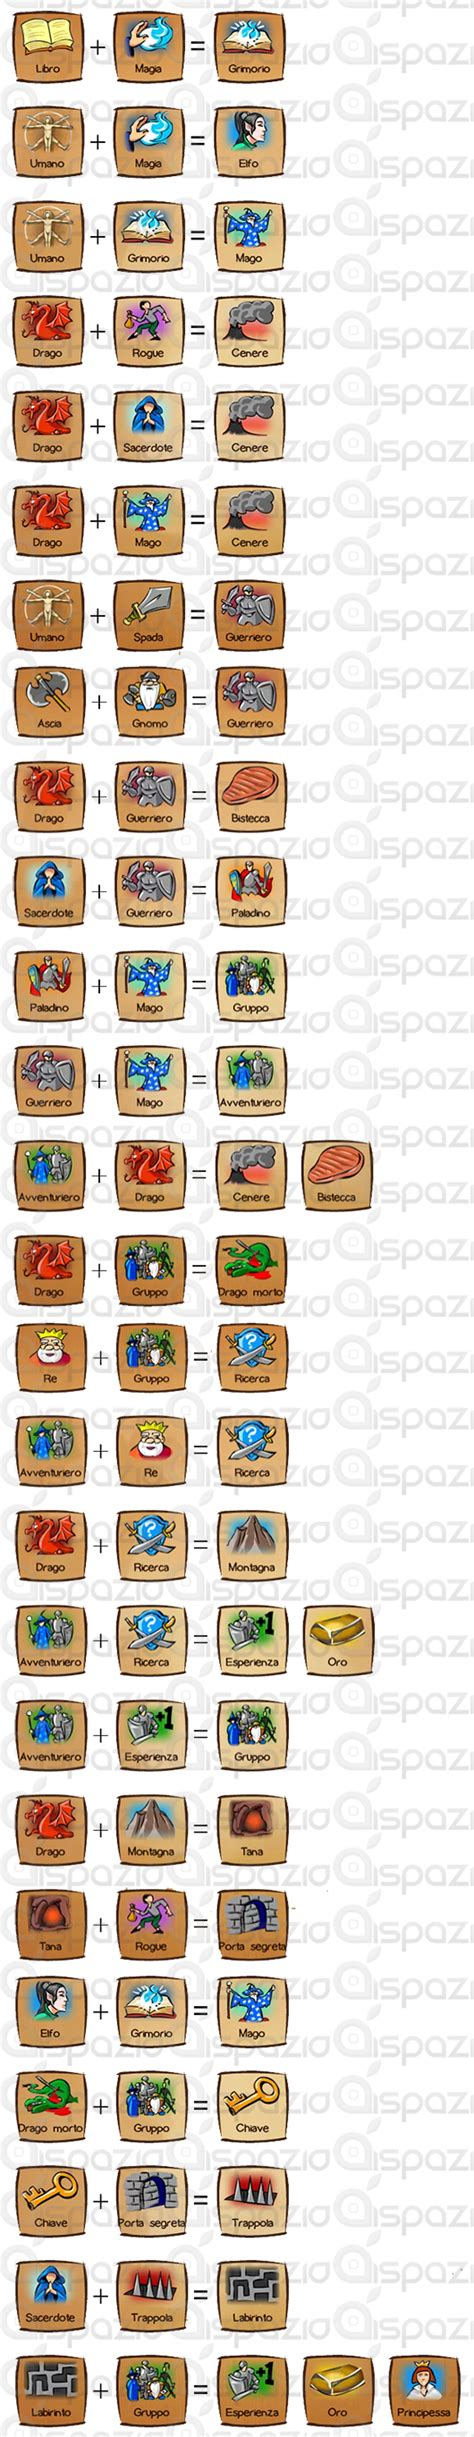 doodle soluzioni doodle god walkthrough completiamo al 100 salva la